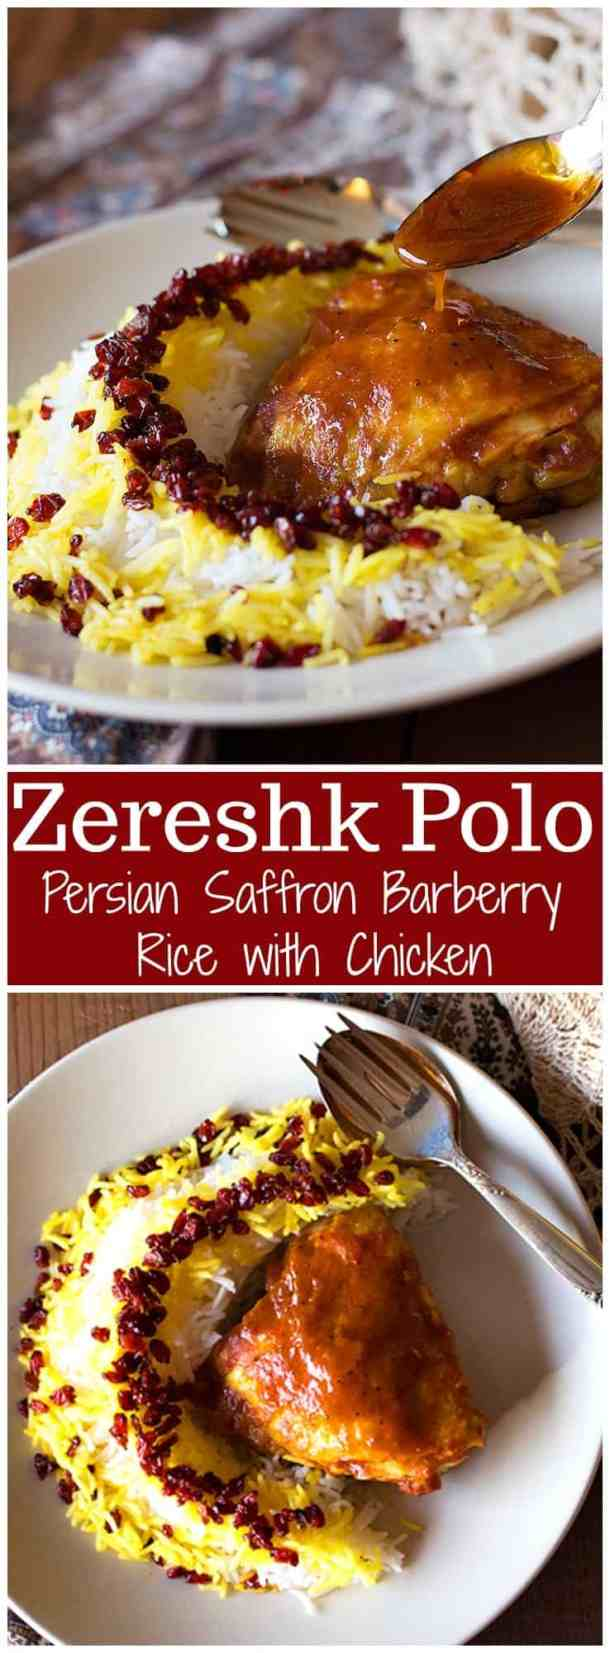 Zereshk polo morgh persian barberry rice with chicken unicorns zereshk polo zereshk polo morgh zereshk polo recipe zereshk polo chicken zereshk forumfinder Images